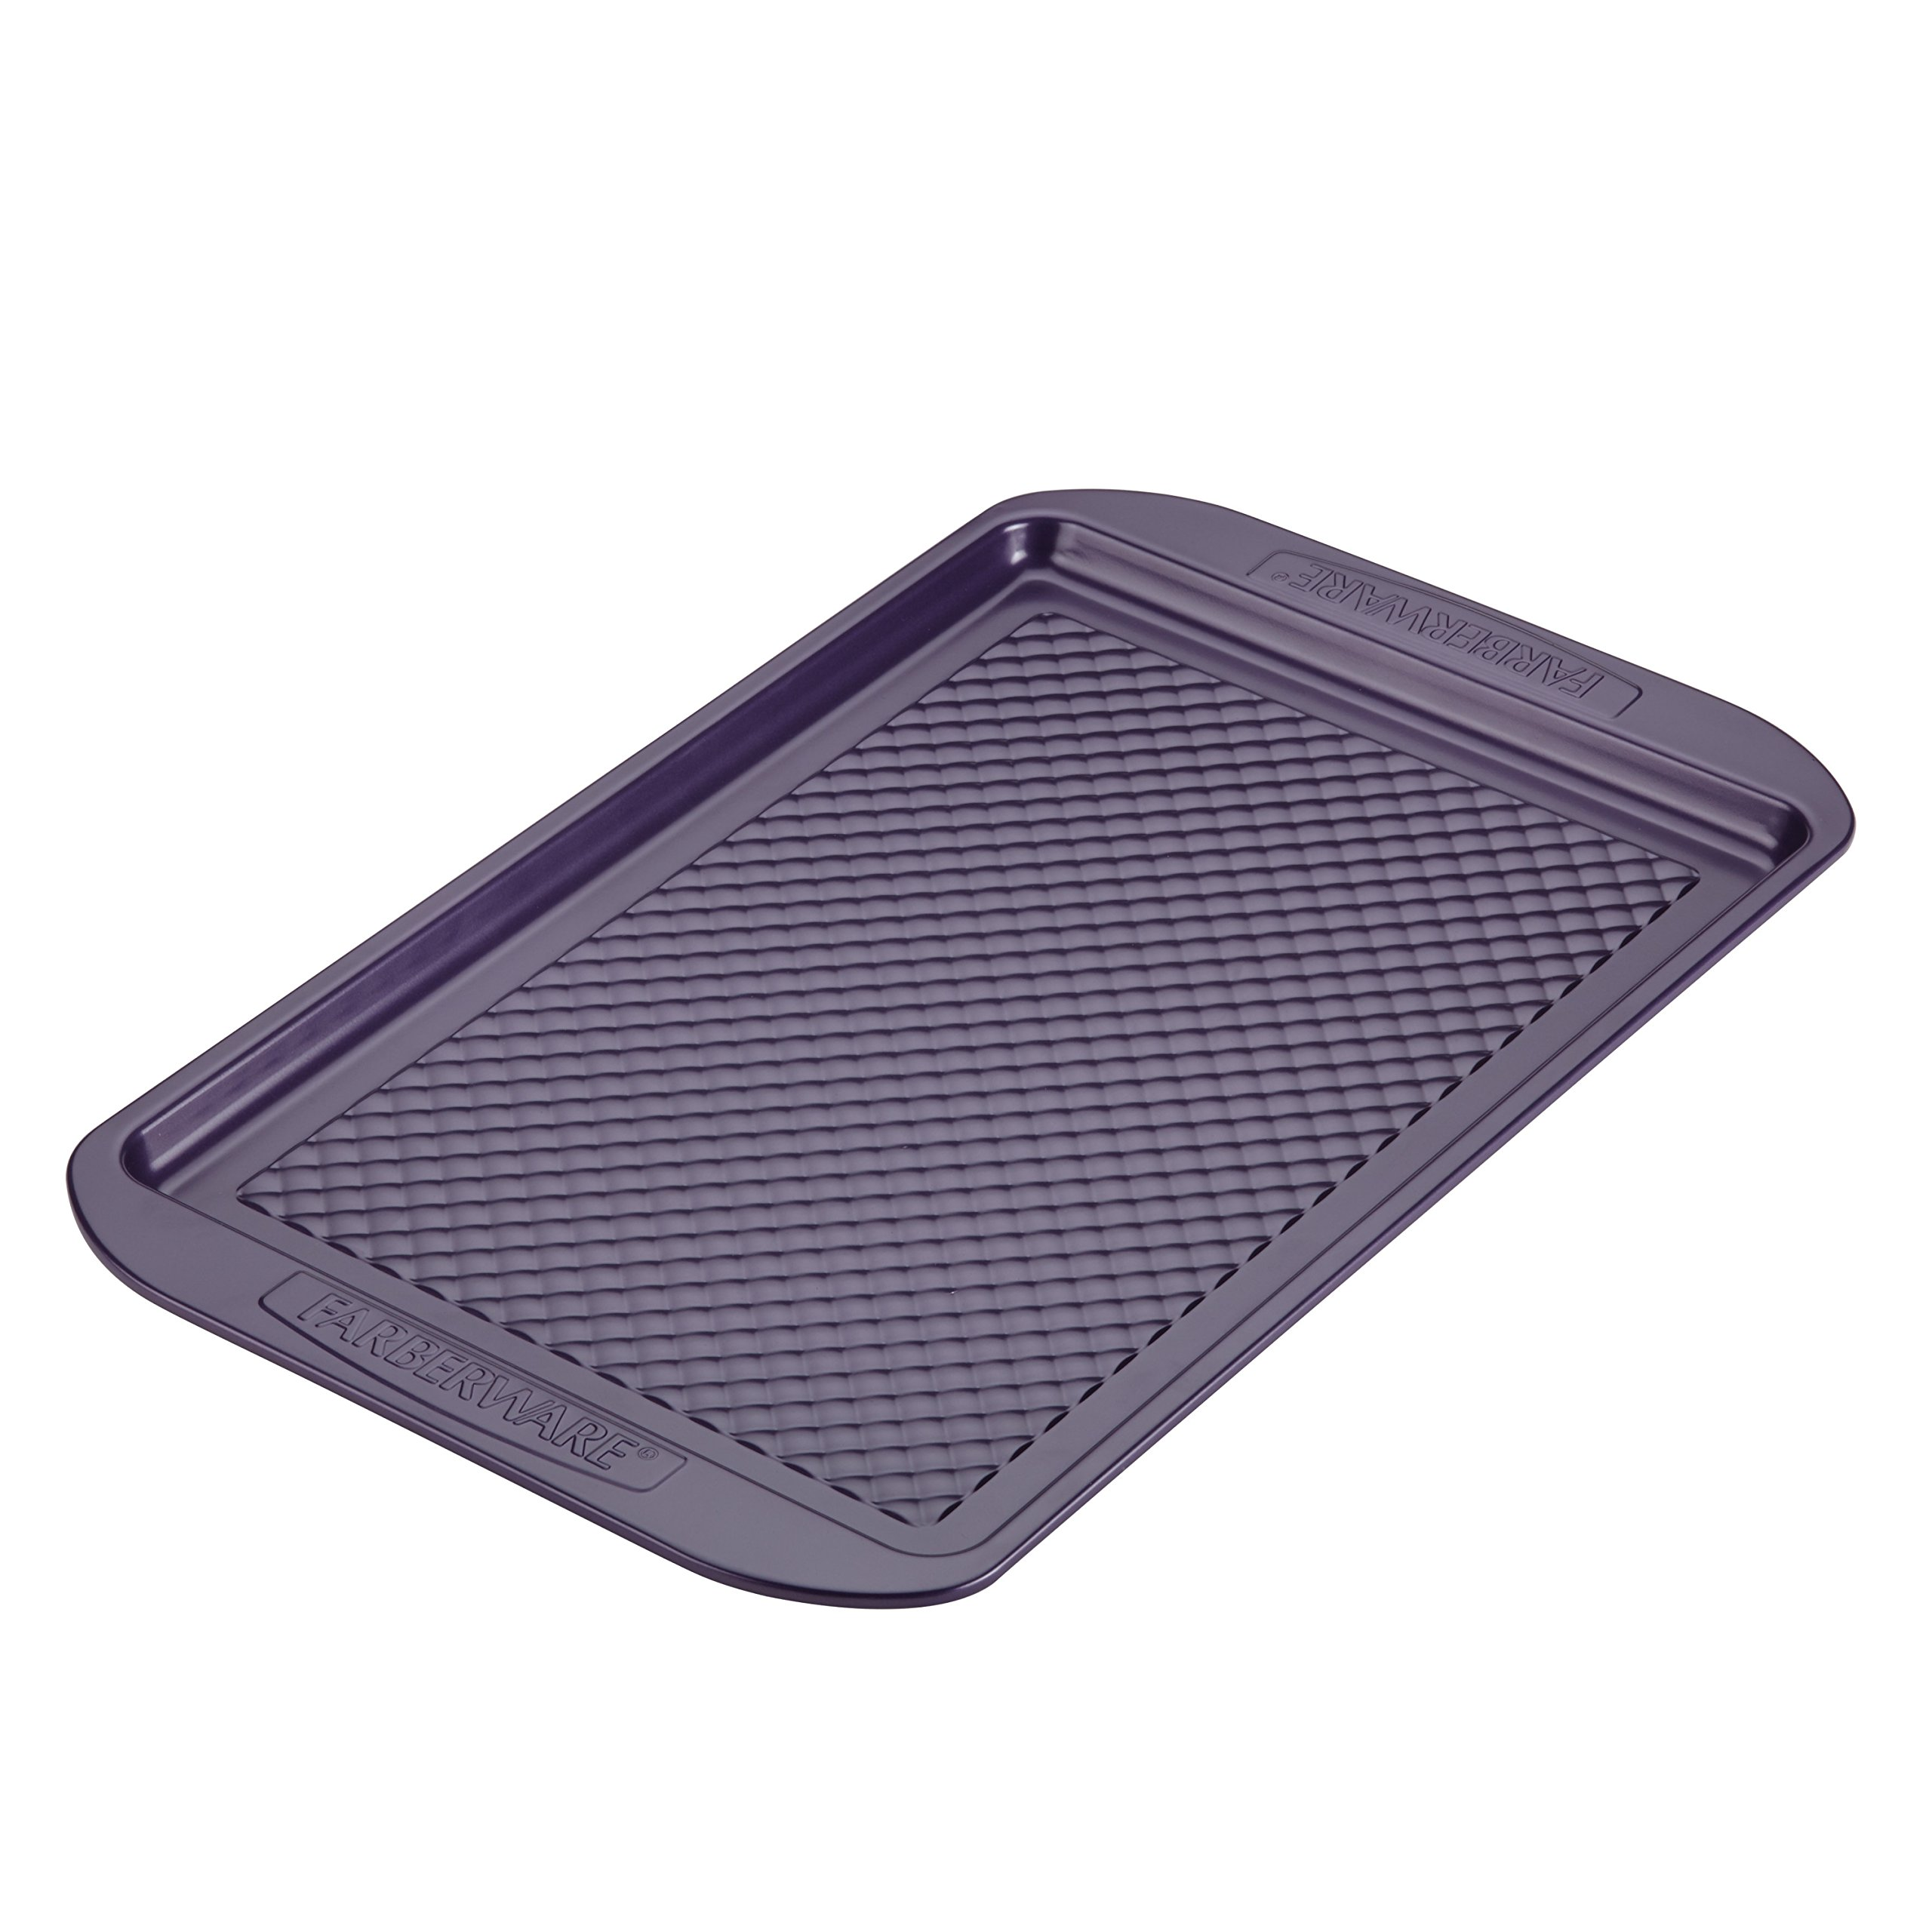 Farberware Nonstick Bakeware, Nonstick Cookie Sheet / Baking Sheet - 11 Inch x 17 Inch, Purple